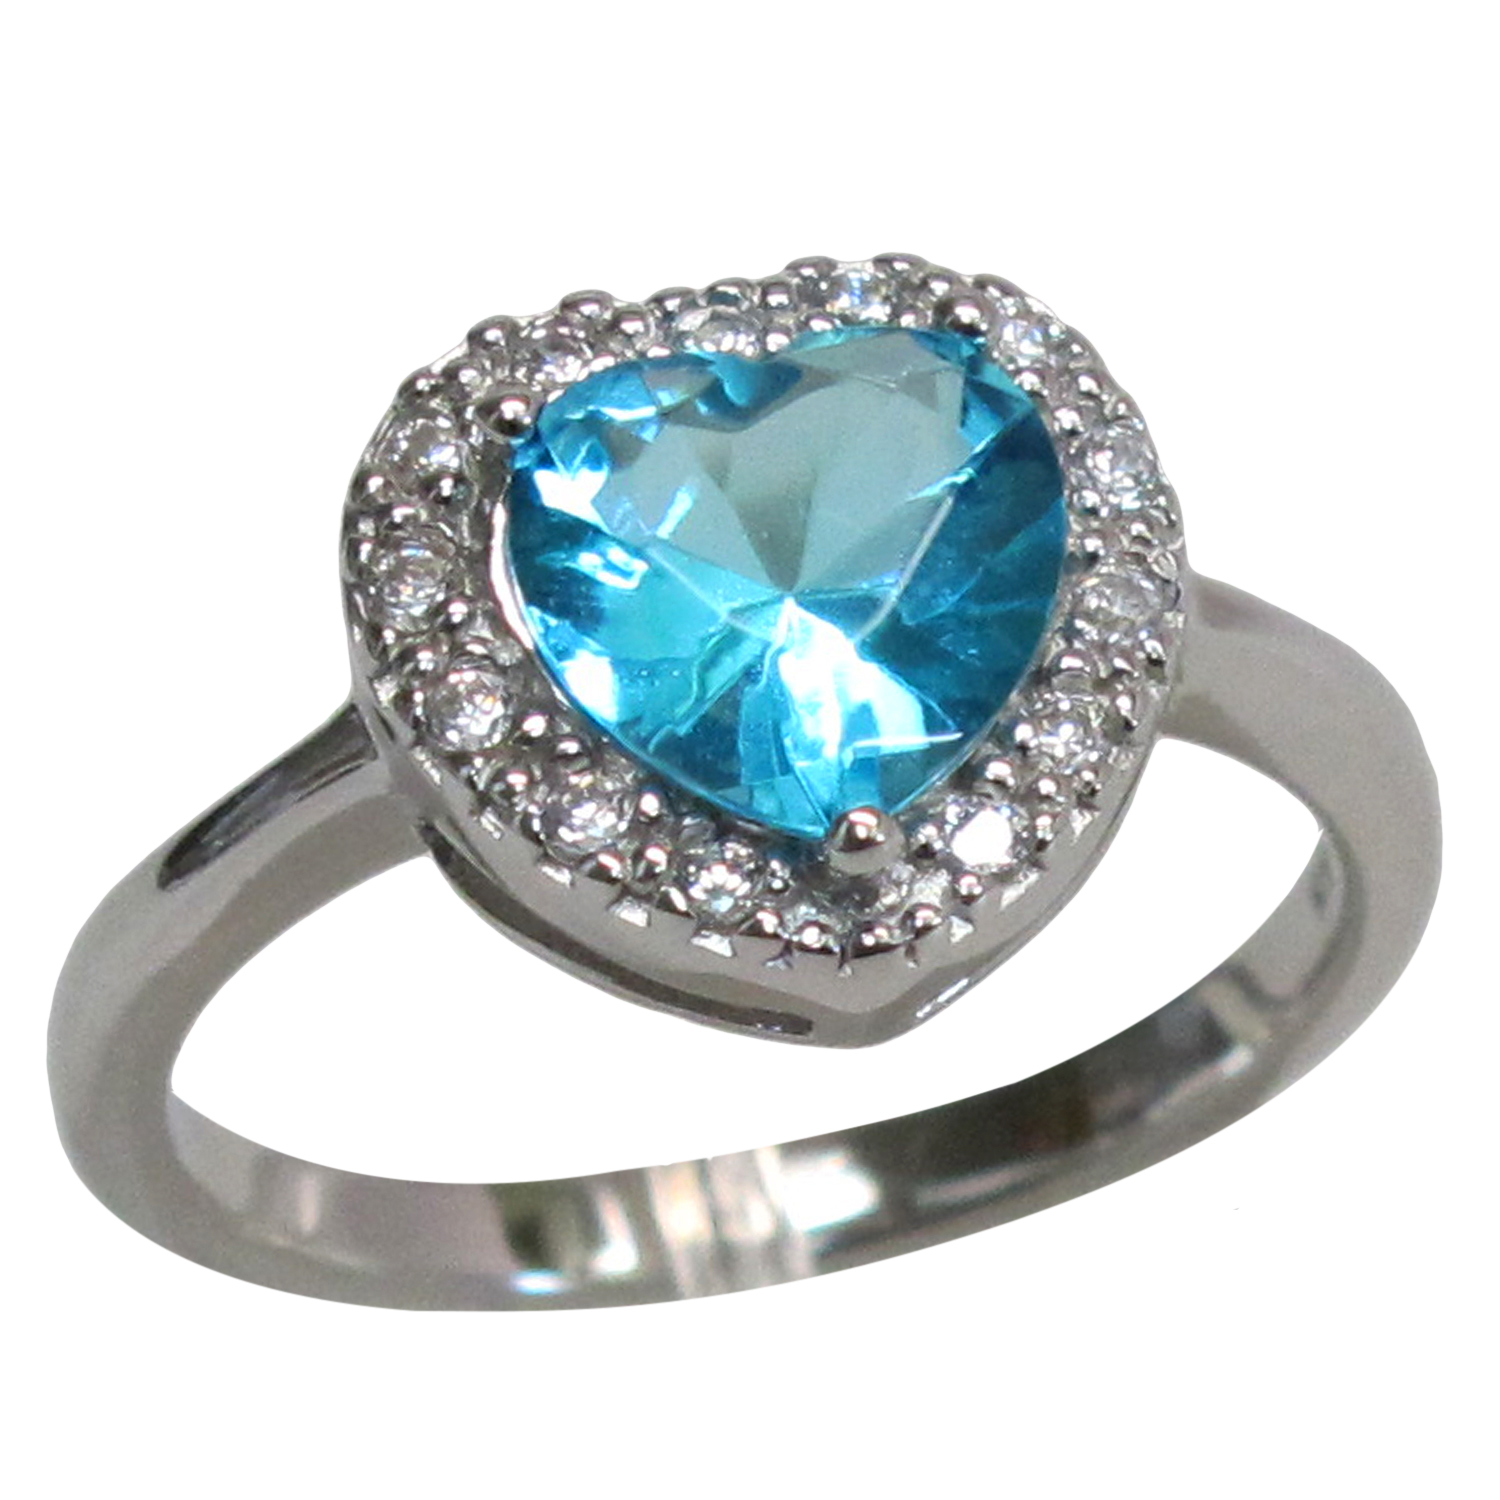 GORGEOUS 2 CT BLUE TOPAZ 925 STERLING SILVER RING SIZE 5-10